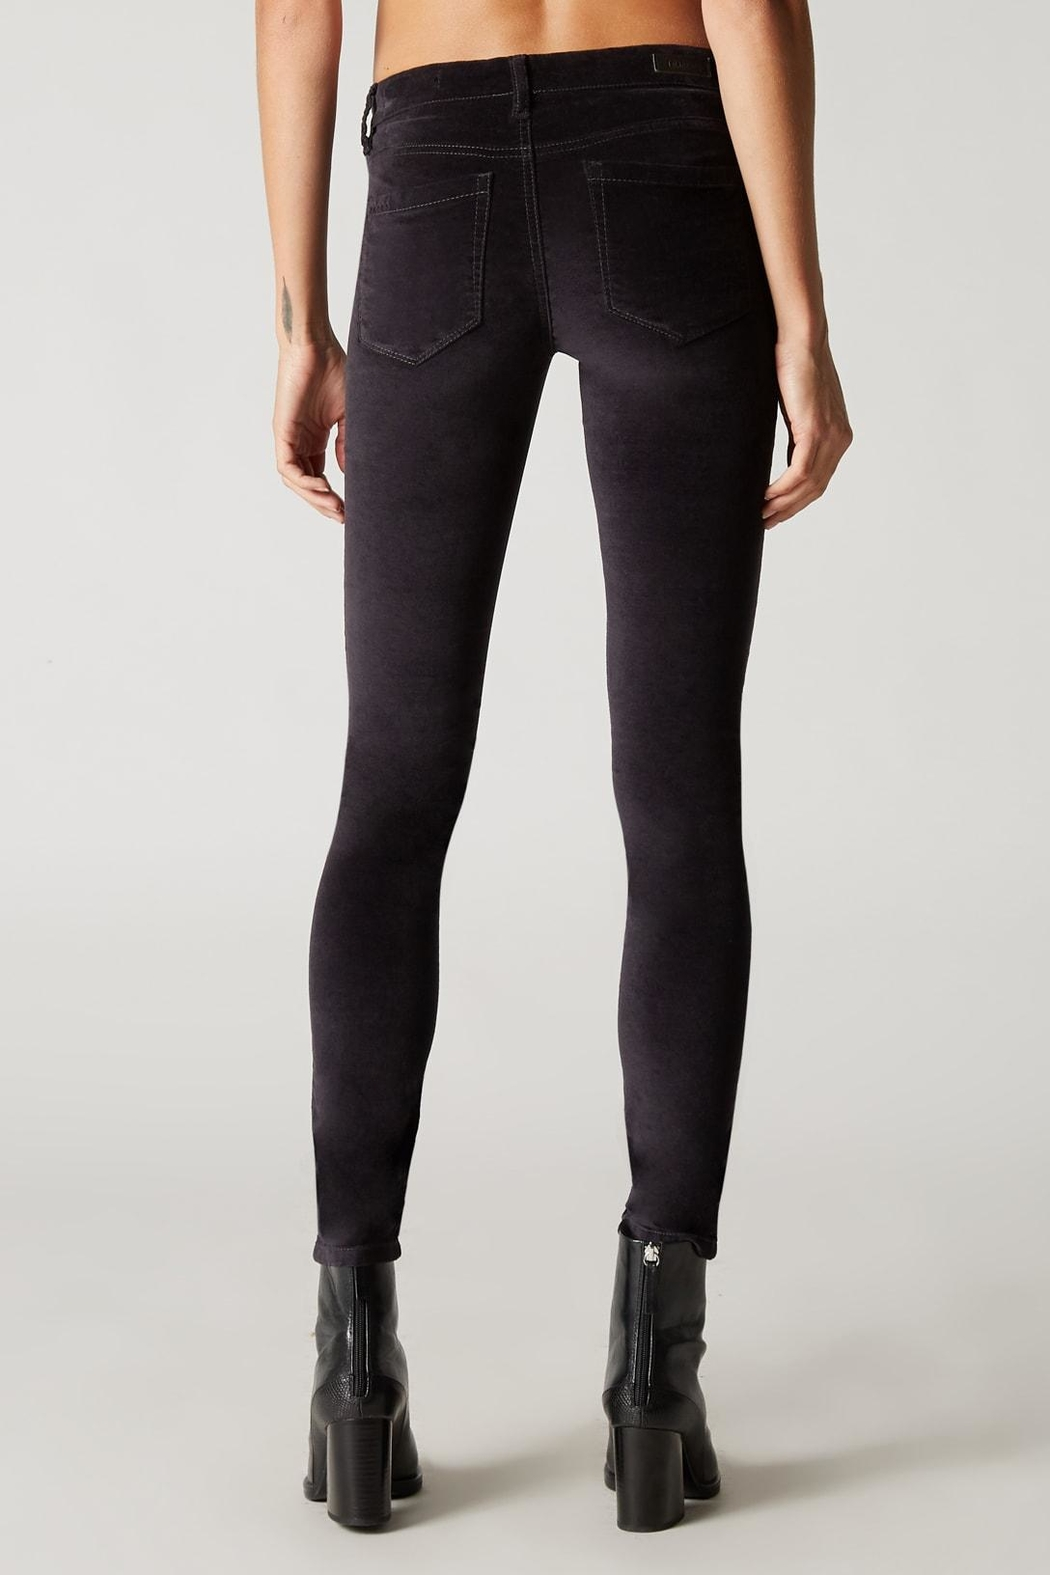 Blank NYC Moonglow Pant - Side Cropped Image